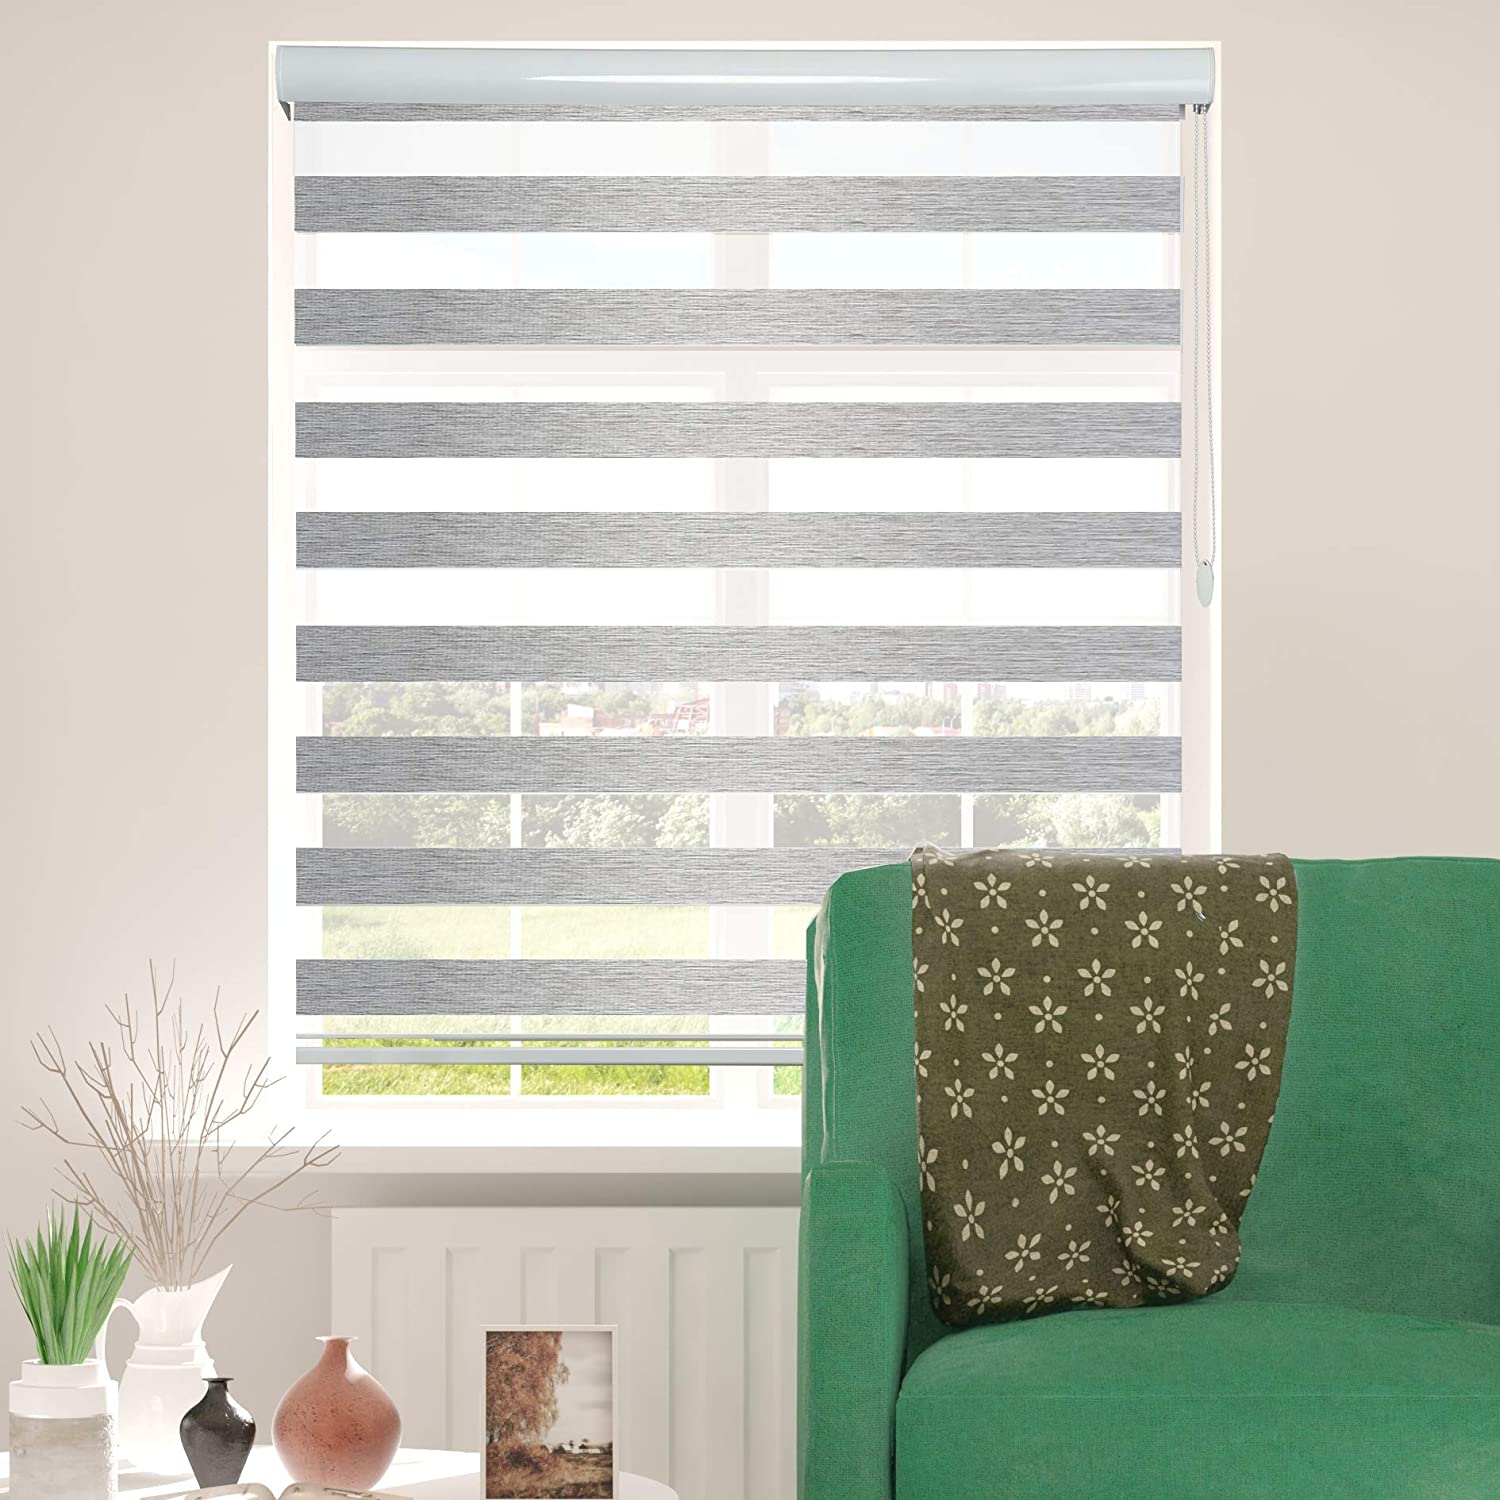 ShadesU Window Shades Dual Layer Zebra Roller Sheer Blind Light Filtering Window Treatments Privacy Light Control for Day and Night(Maxium Height 72inch) (Grey Color) (Width 34inch)